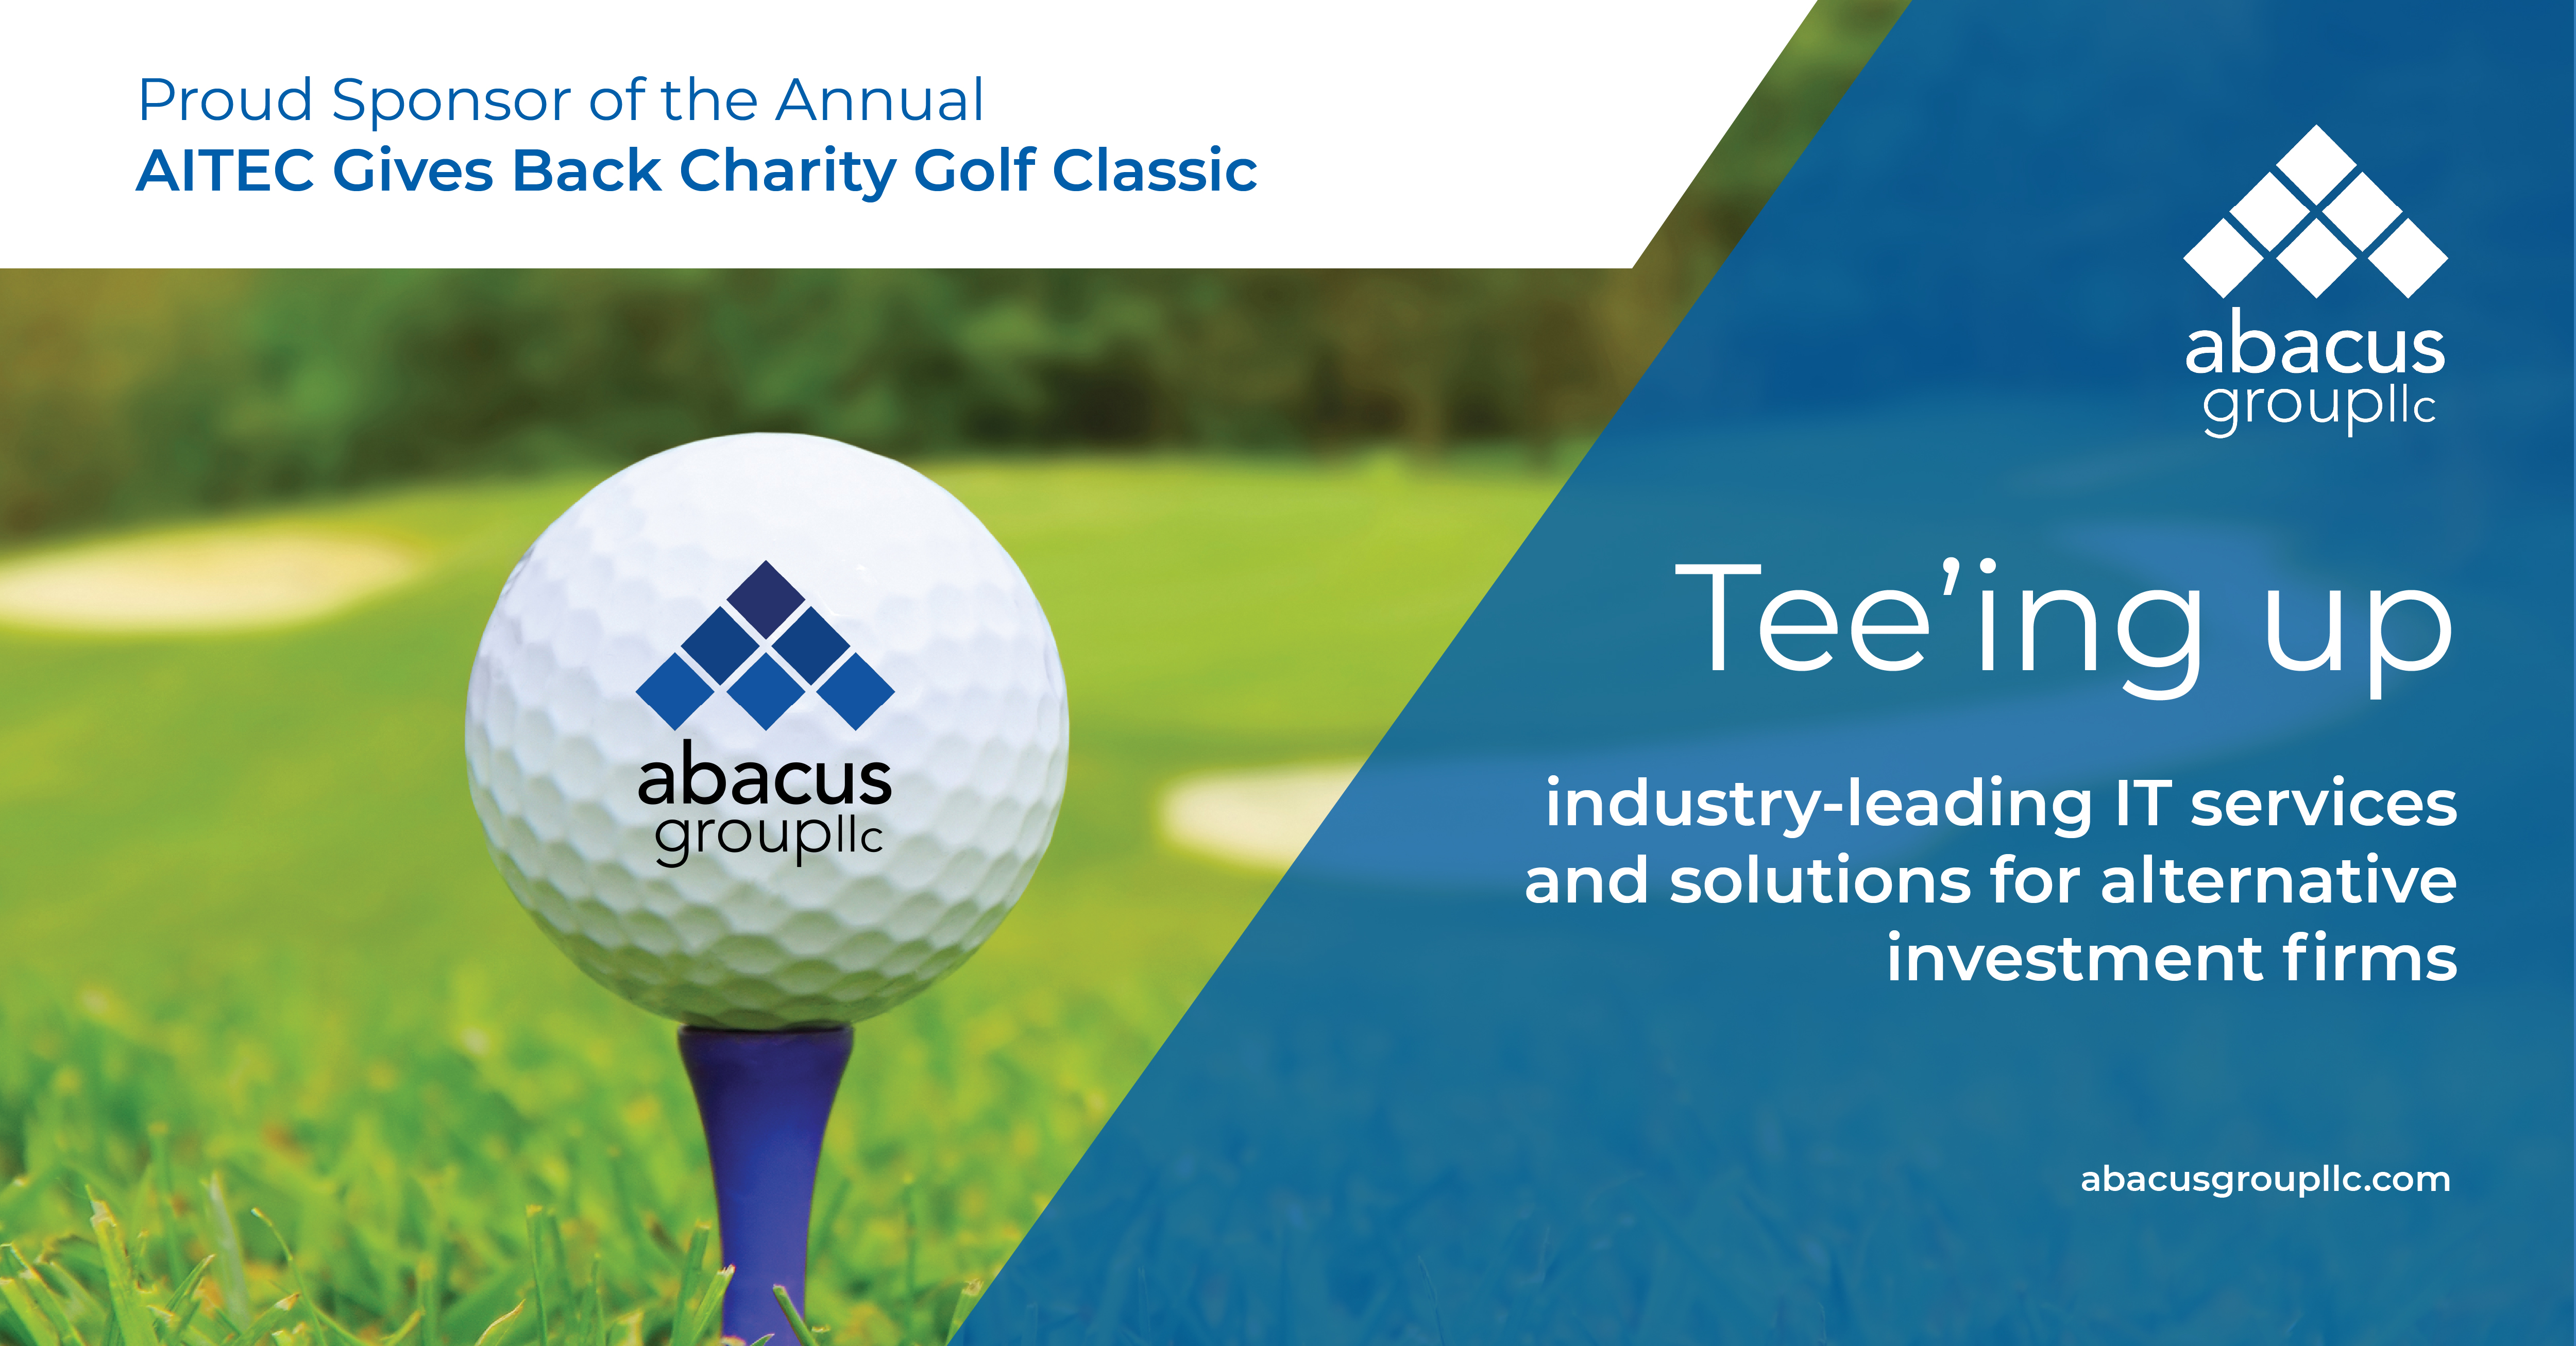 Abacus Group Sponsors AITEC Gives Back Charity Golf Classic